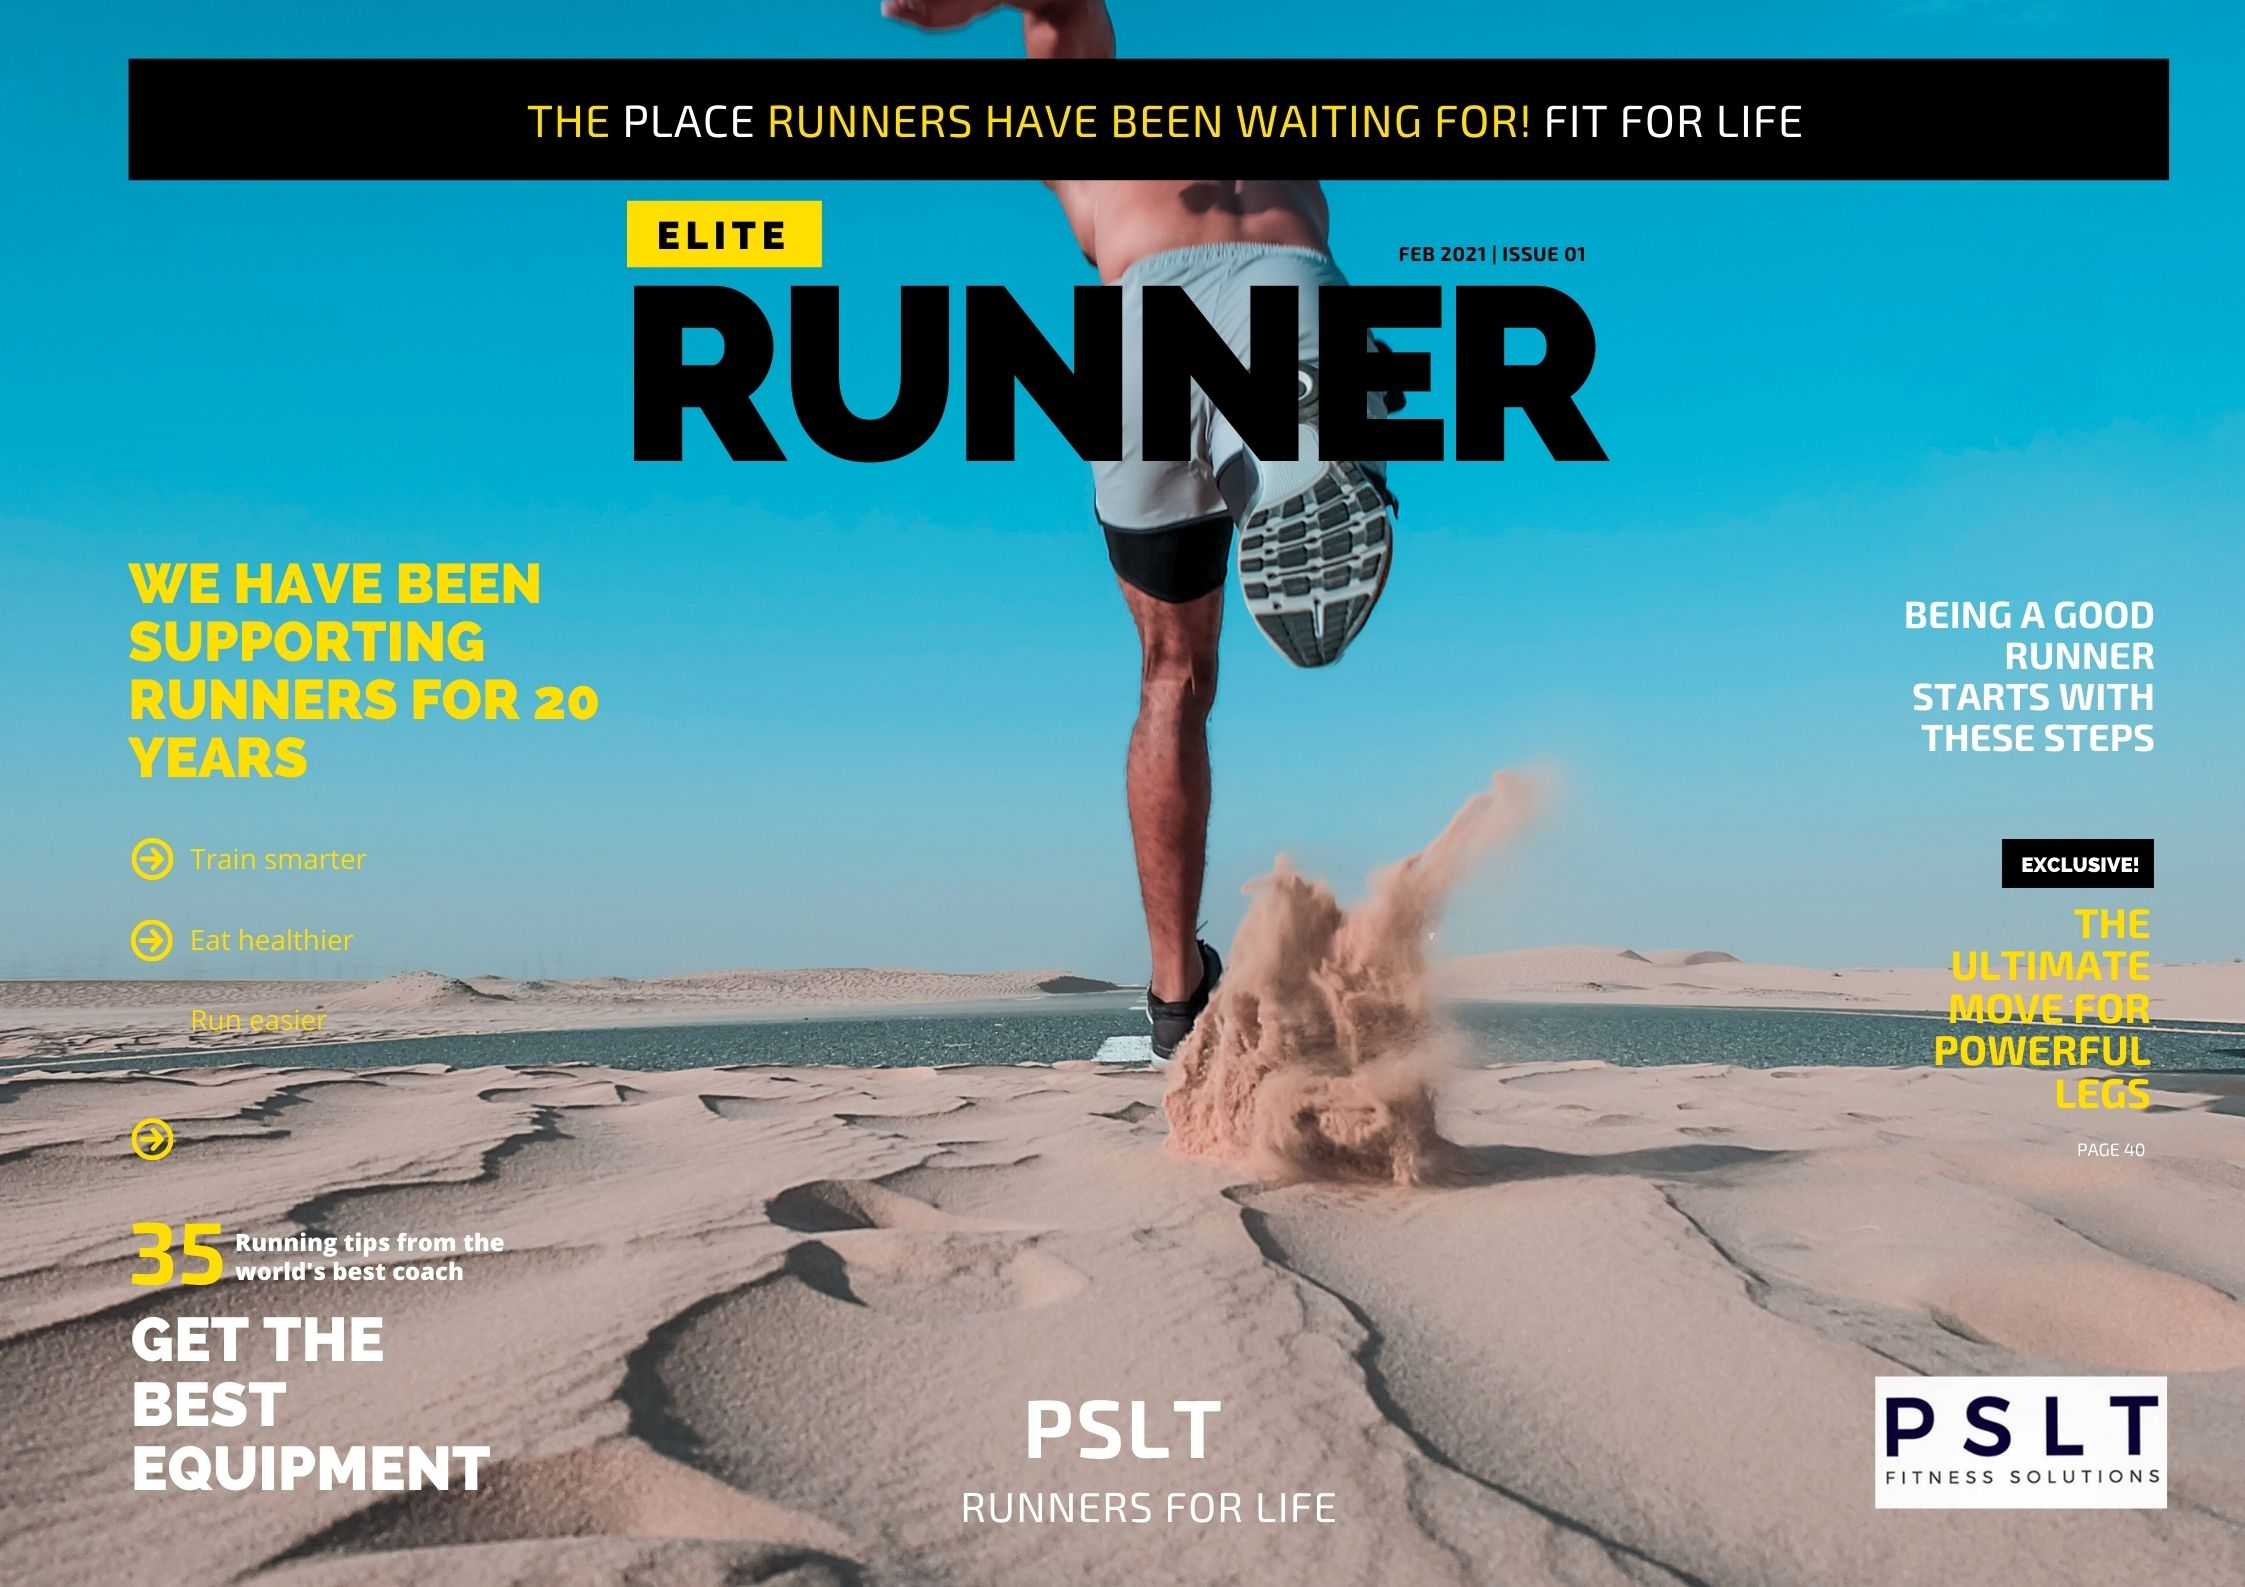 Run with PSLT - The home of runners - Elite runners